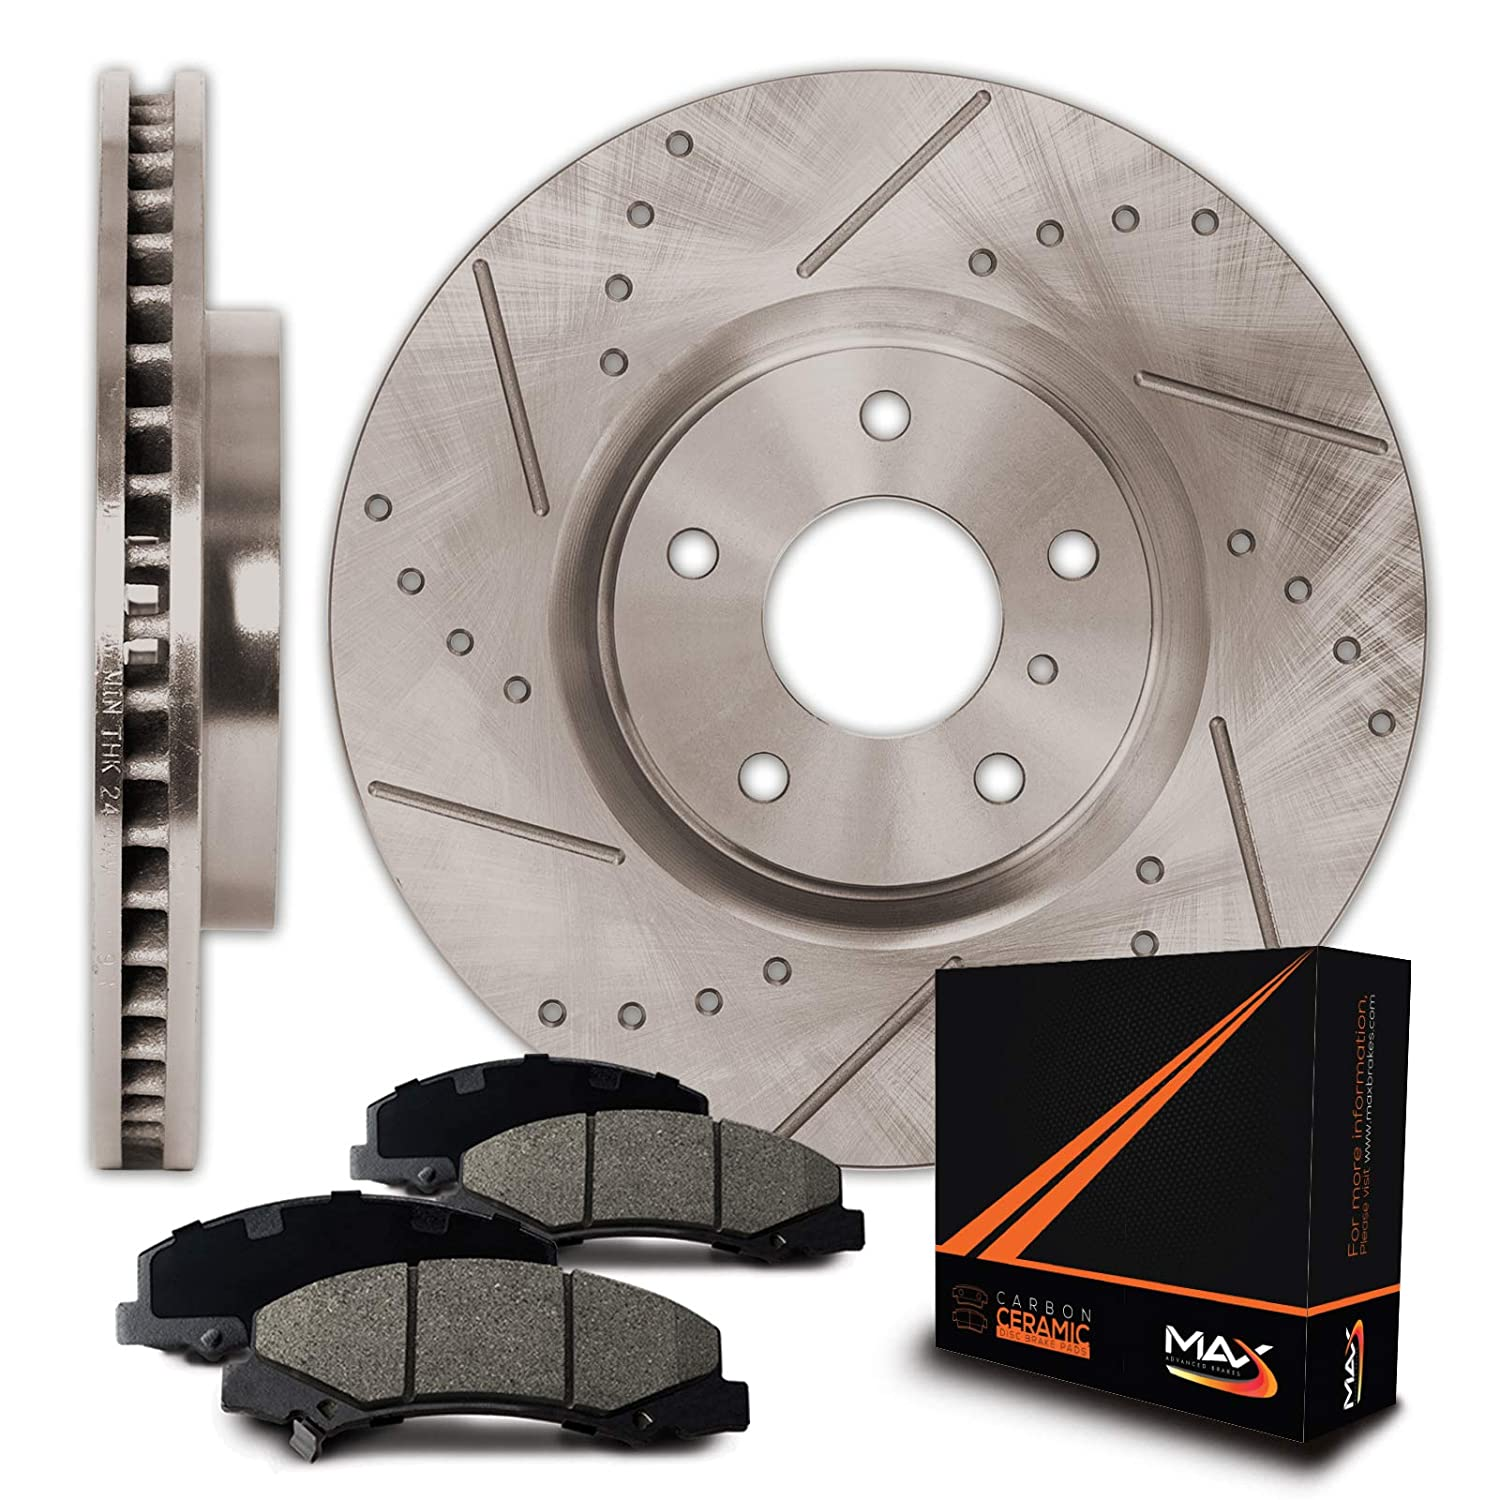 Max Brakes Premium Slotted|Drilled Rotors w/Ceramic Brake Pads Front Performance Brake Kit KT006131 [Fits:1999-2004 Honda Odyssey | 2001-2002 Acura MDX] Max Advanced Brakes